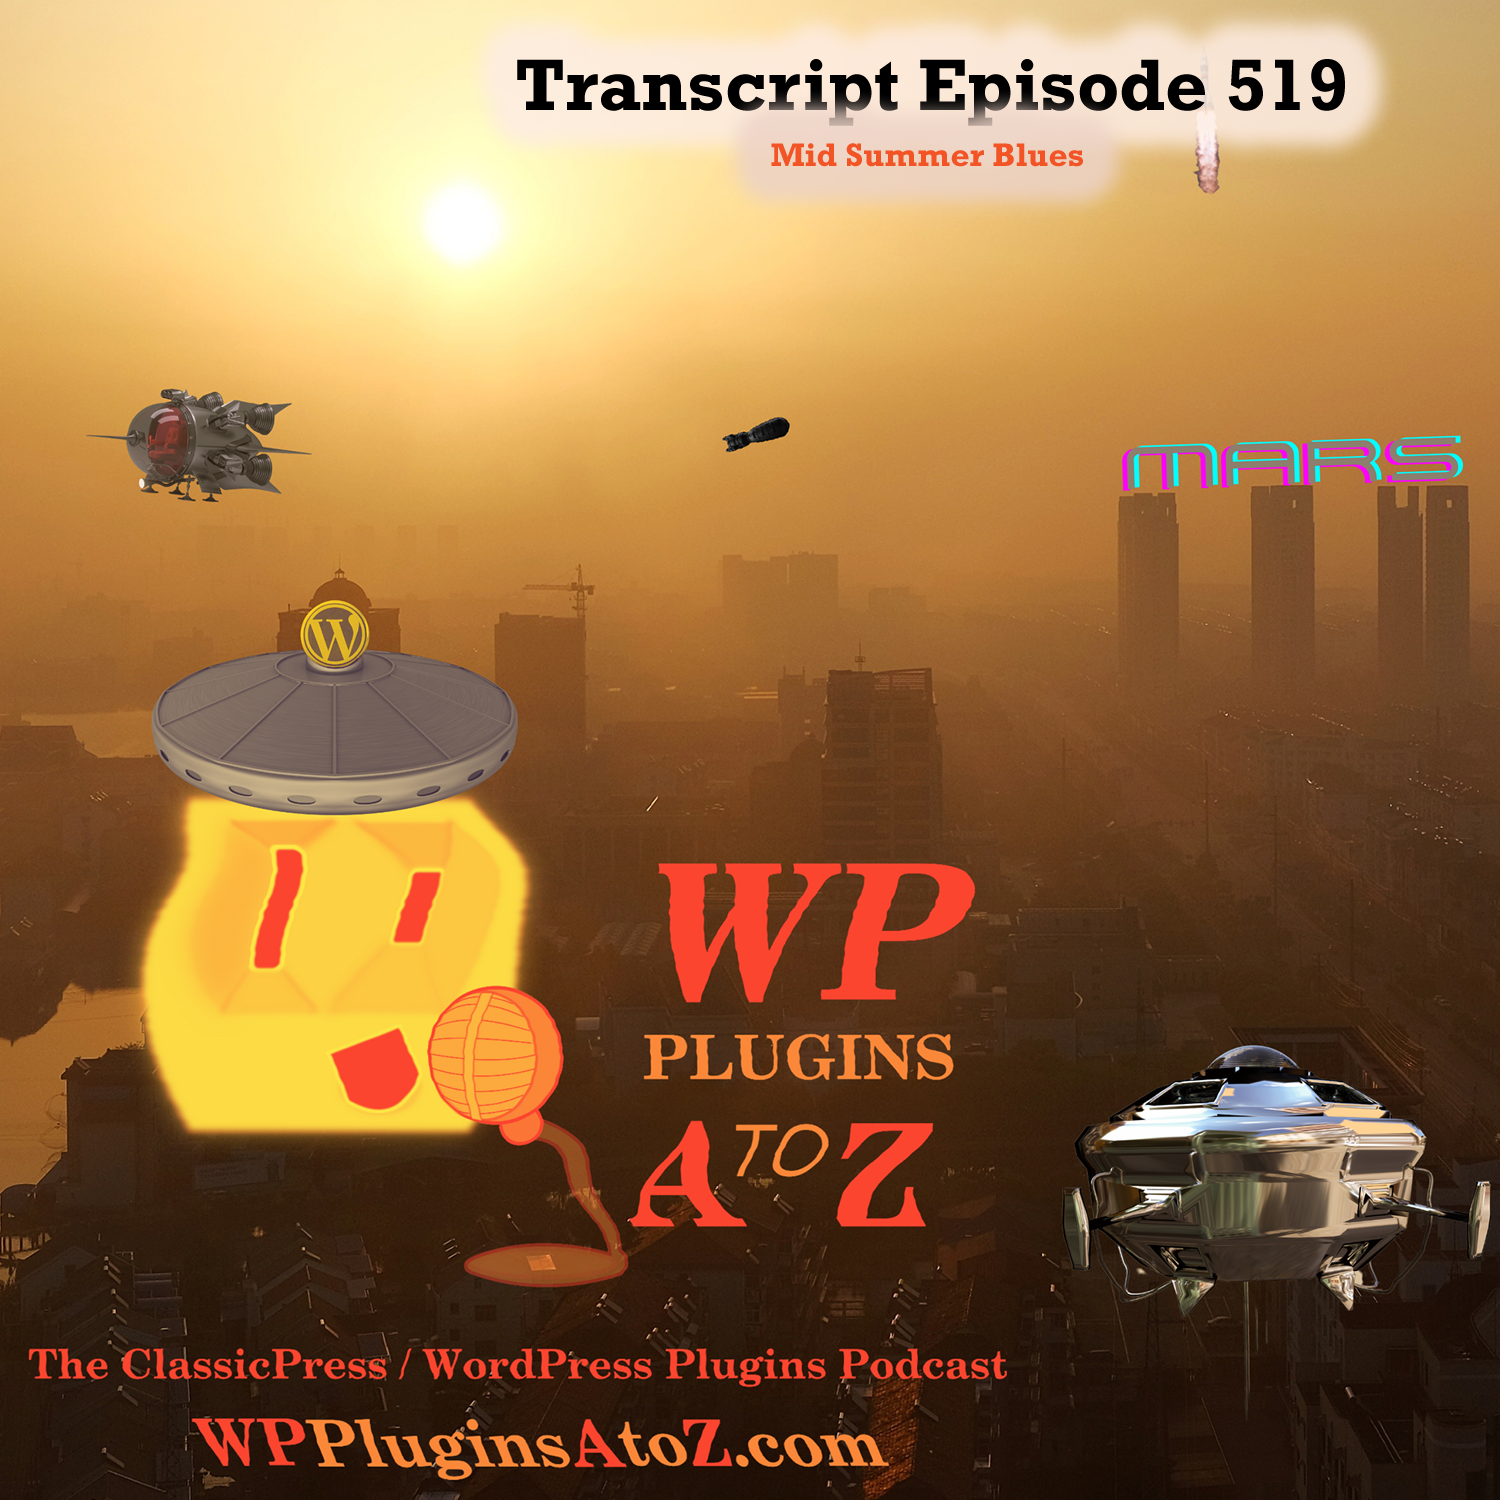 Mid Summer Blues It's Episode 519 - We have plugins for Time Wasting, Saving Time, Deliveries ... and ClassicPress Options. It's all coming up on WordPress Plugins A-Z!